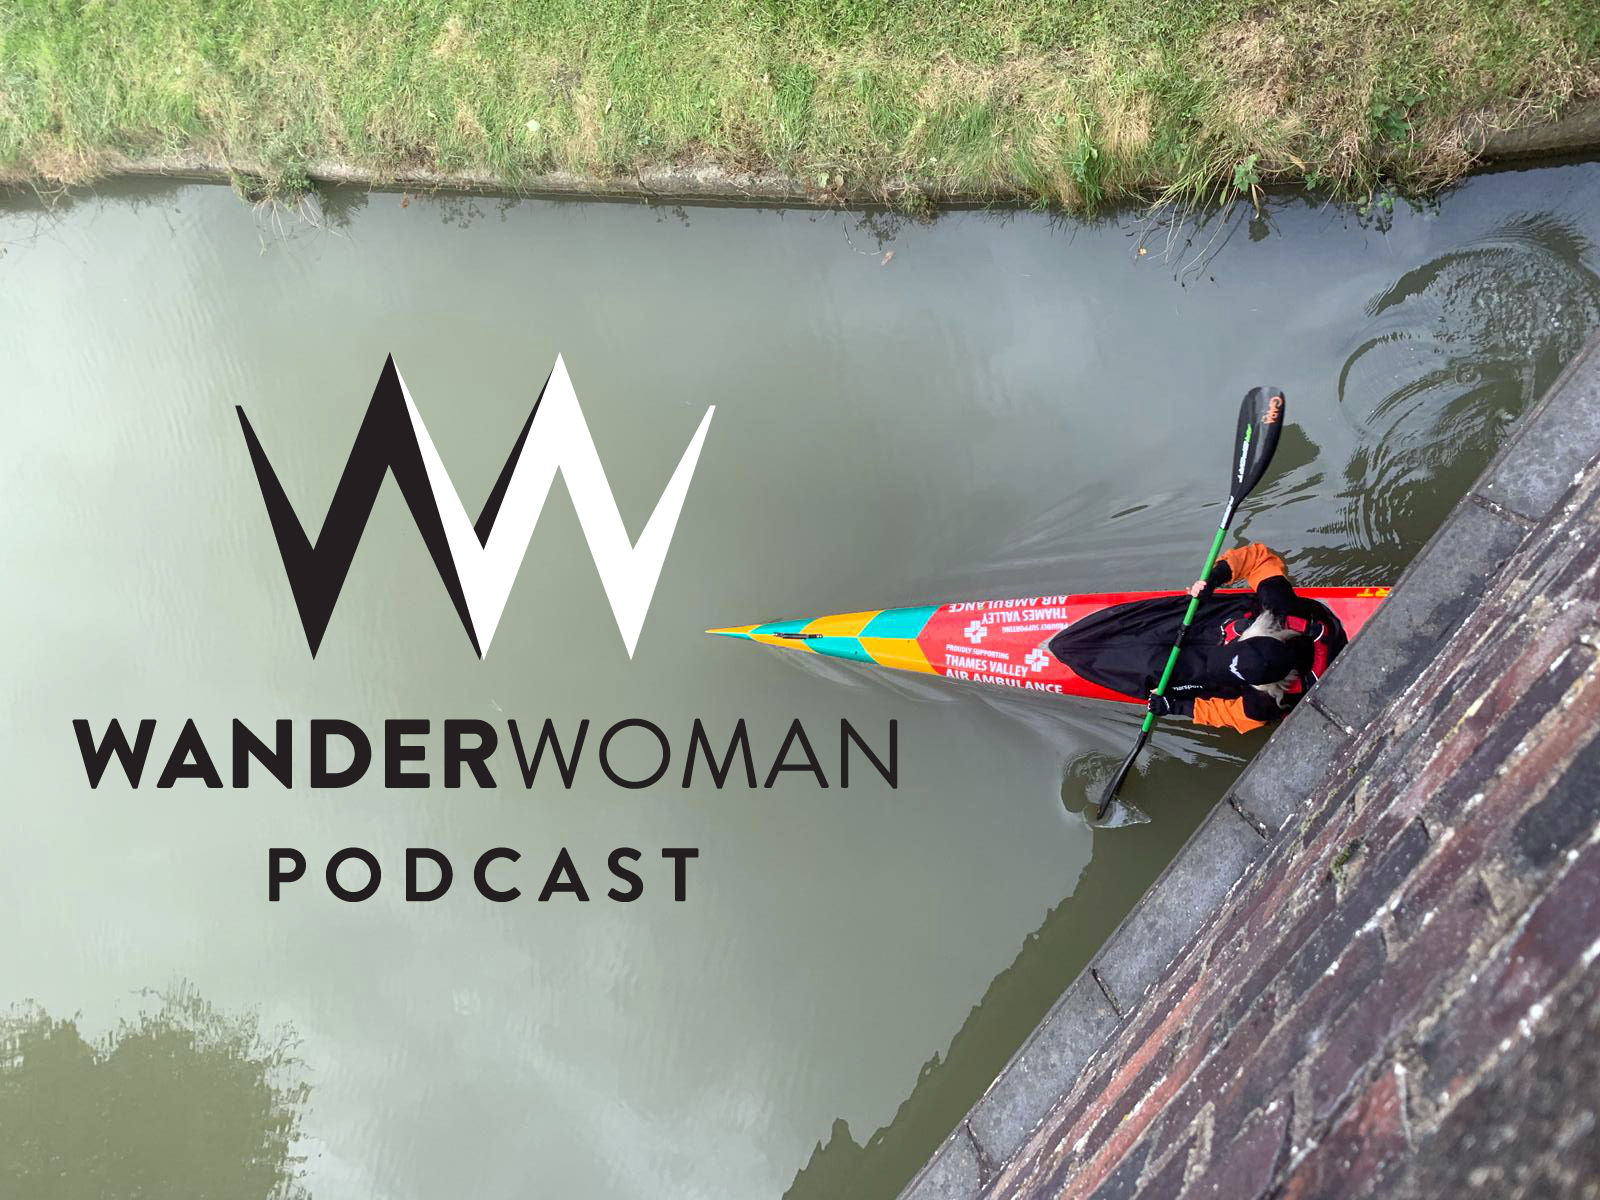 Wander Woman Episode 6 – Now Live